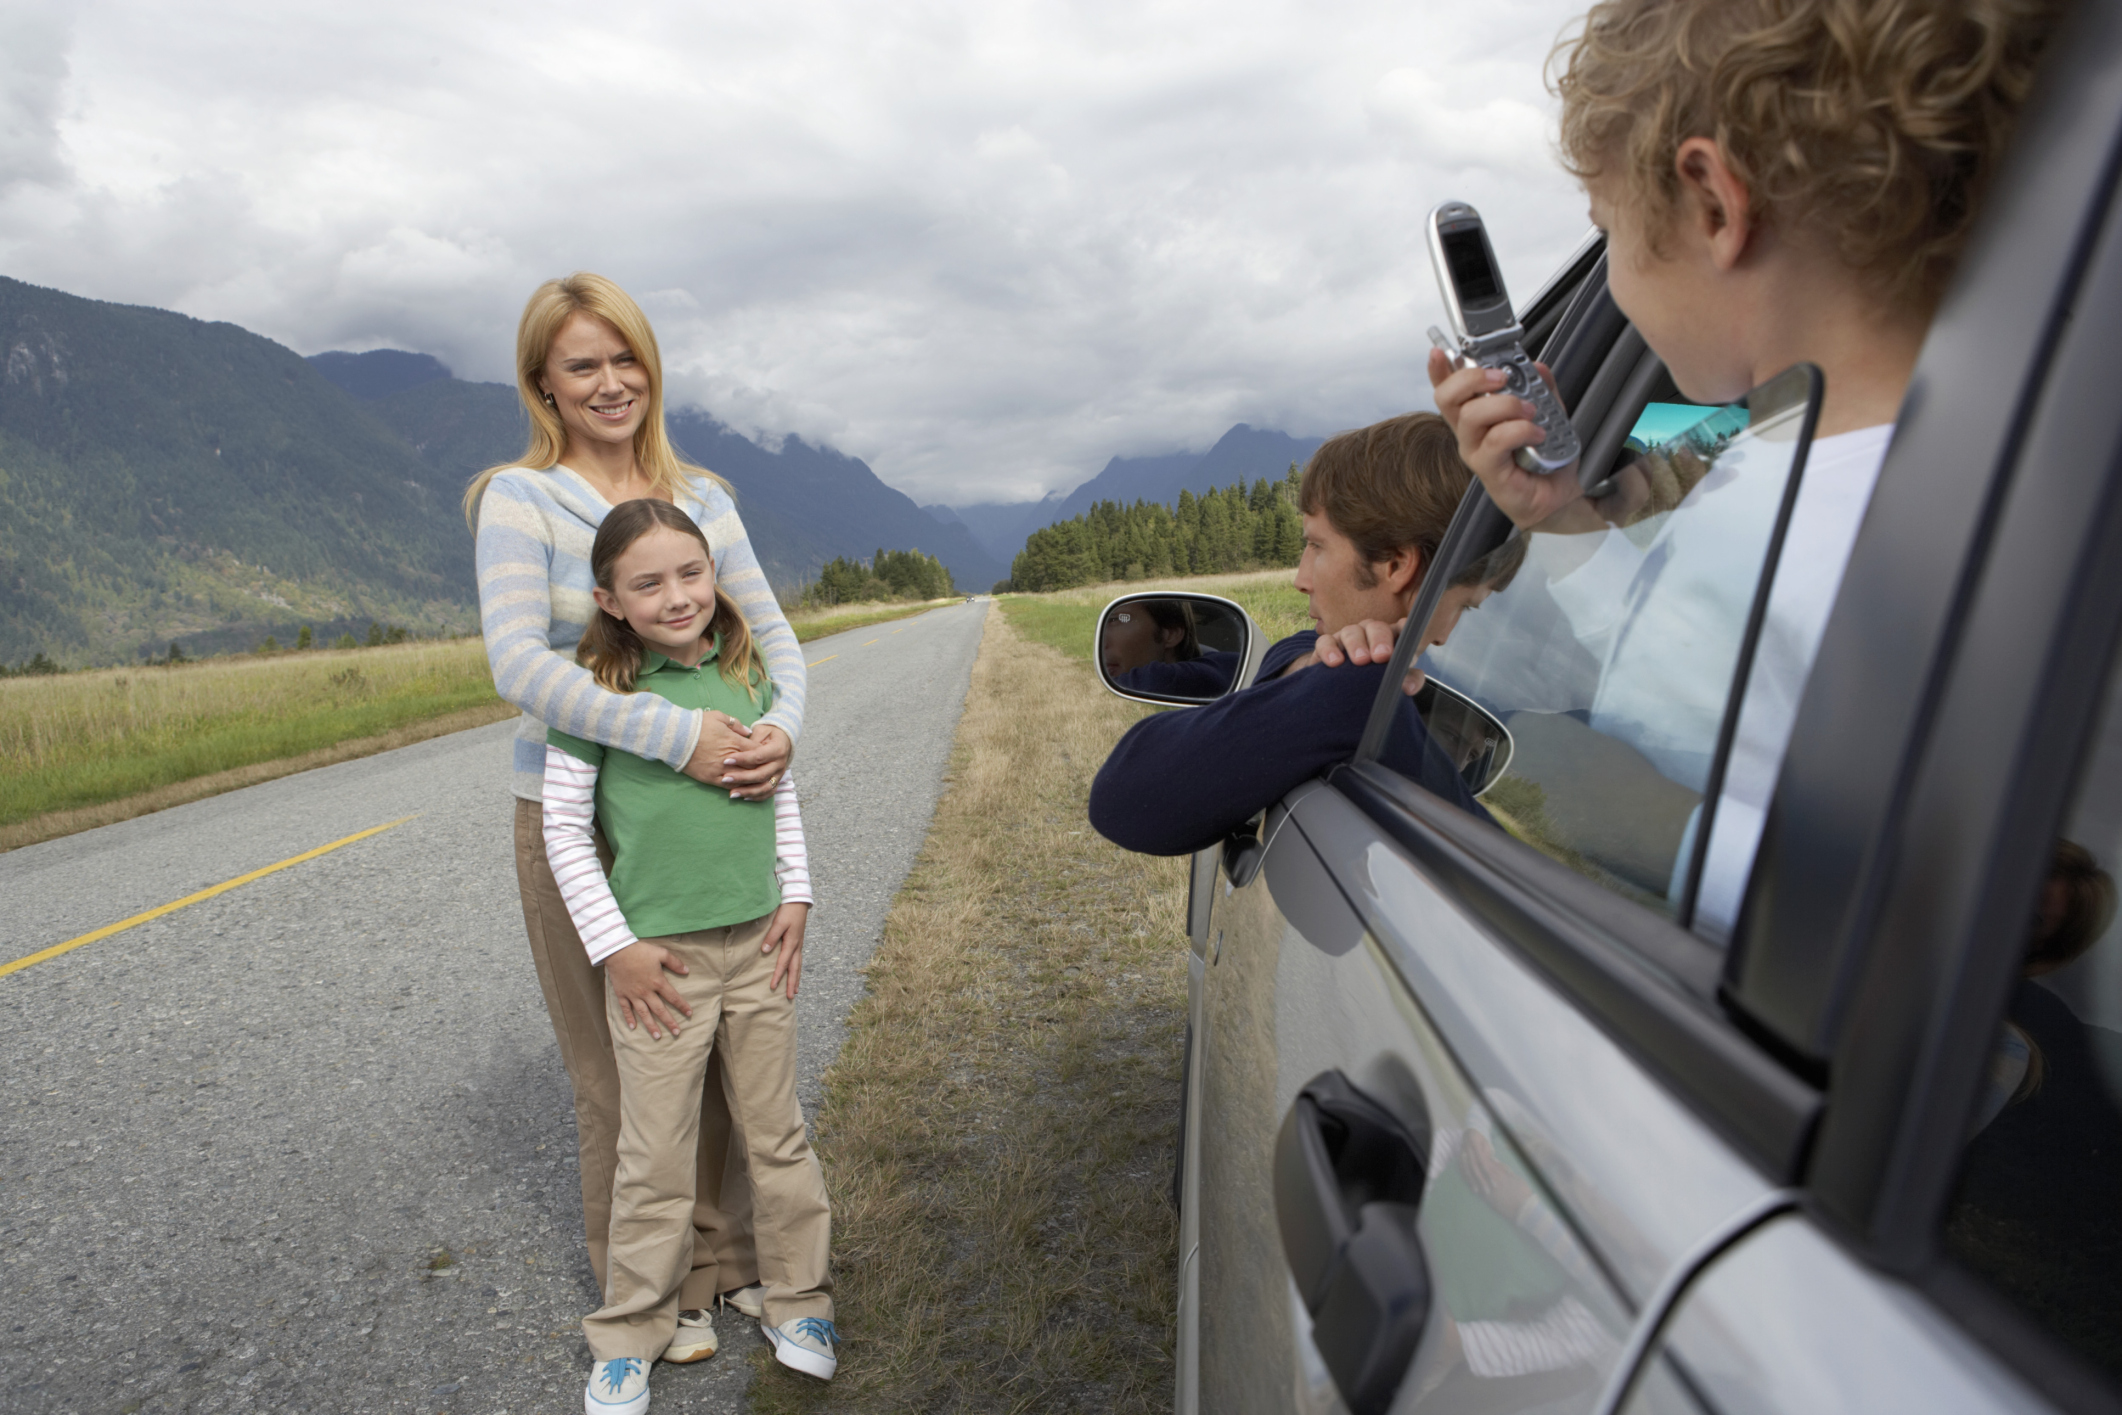 Can You Take A Rental Car From Usa To Canada